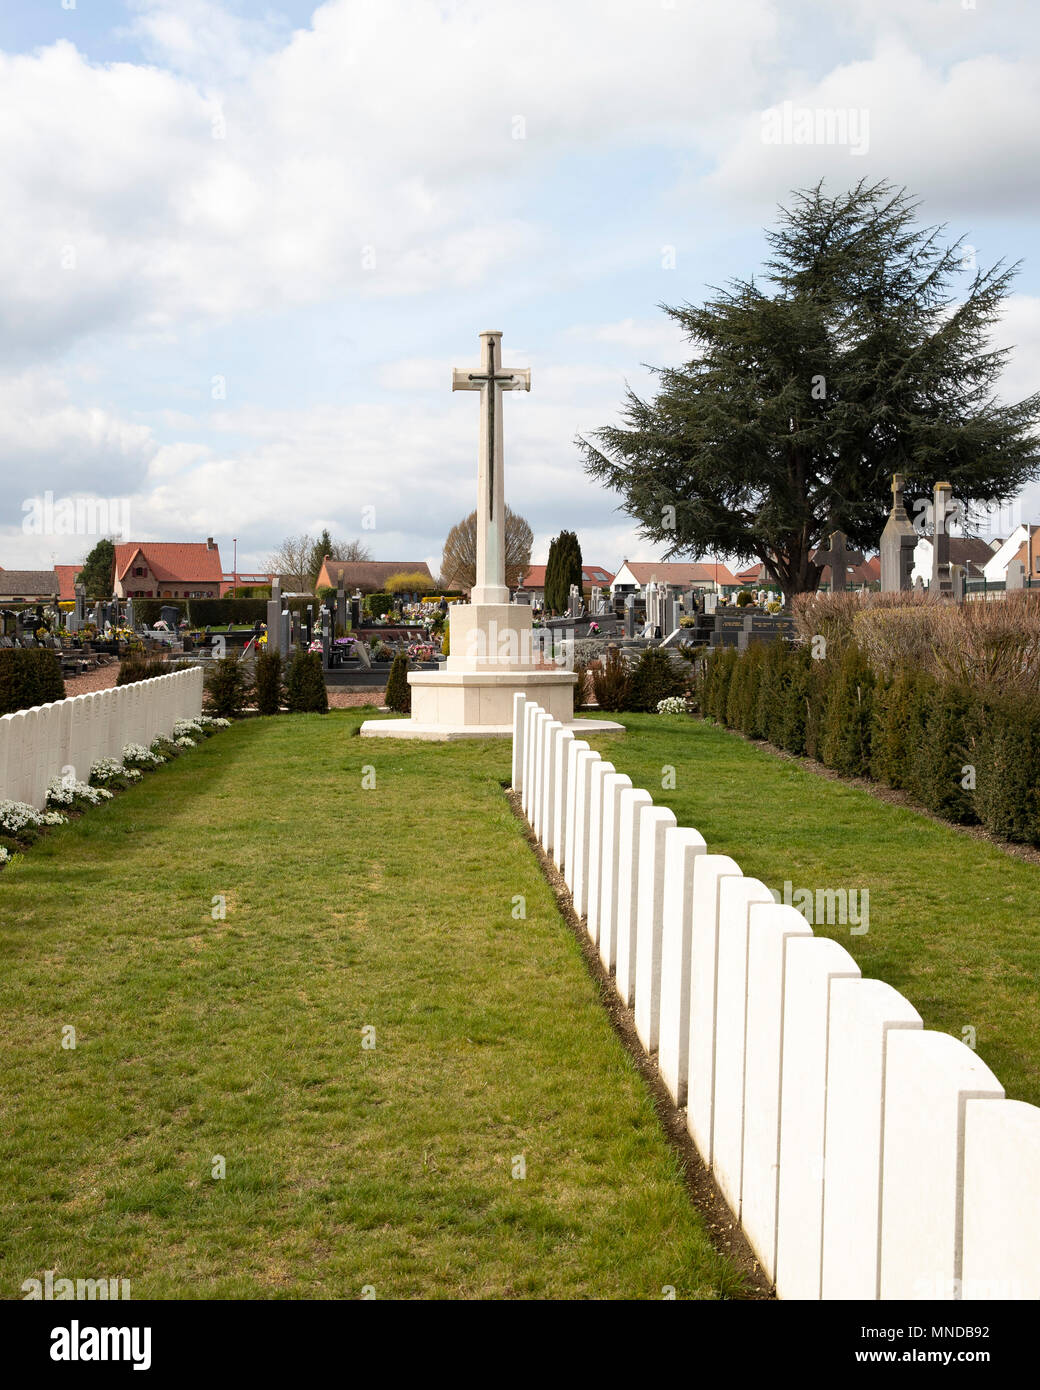 Iwuy Communal Cemetery of the Great War - Stock Image